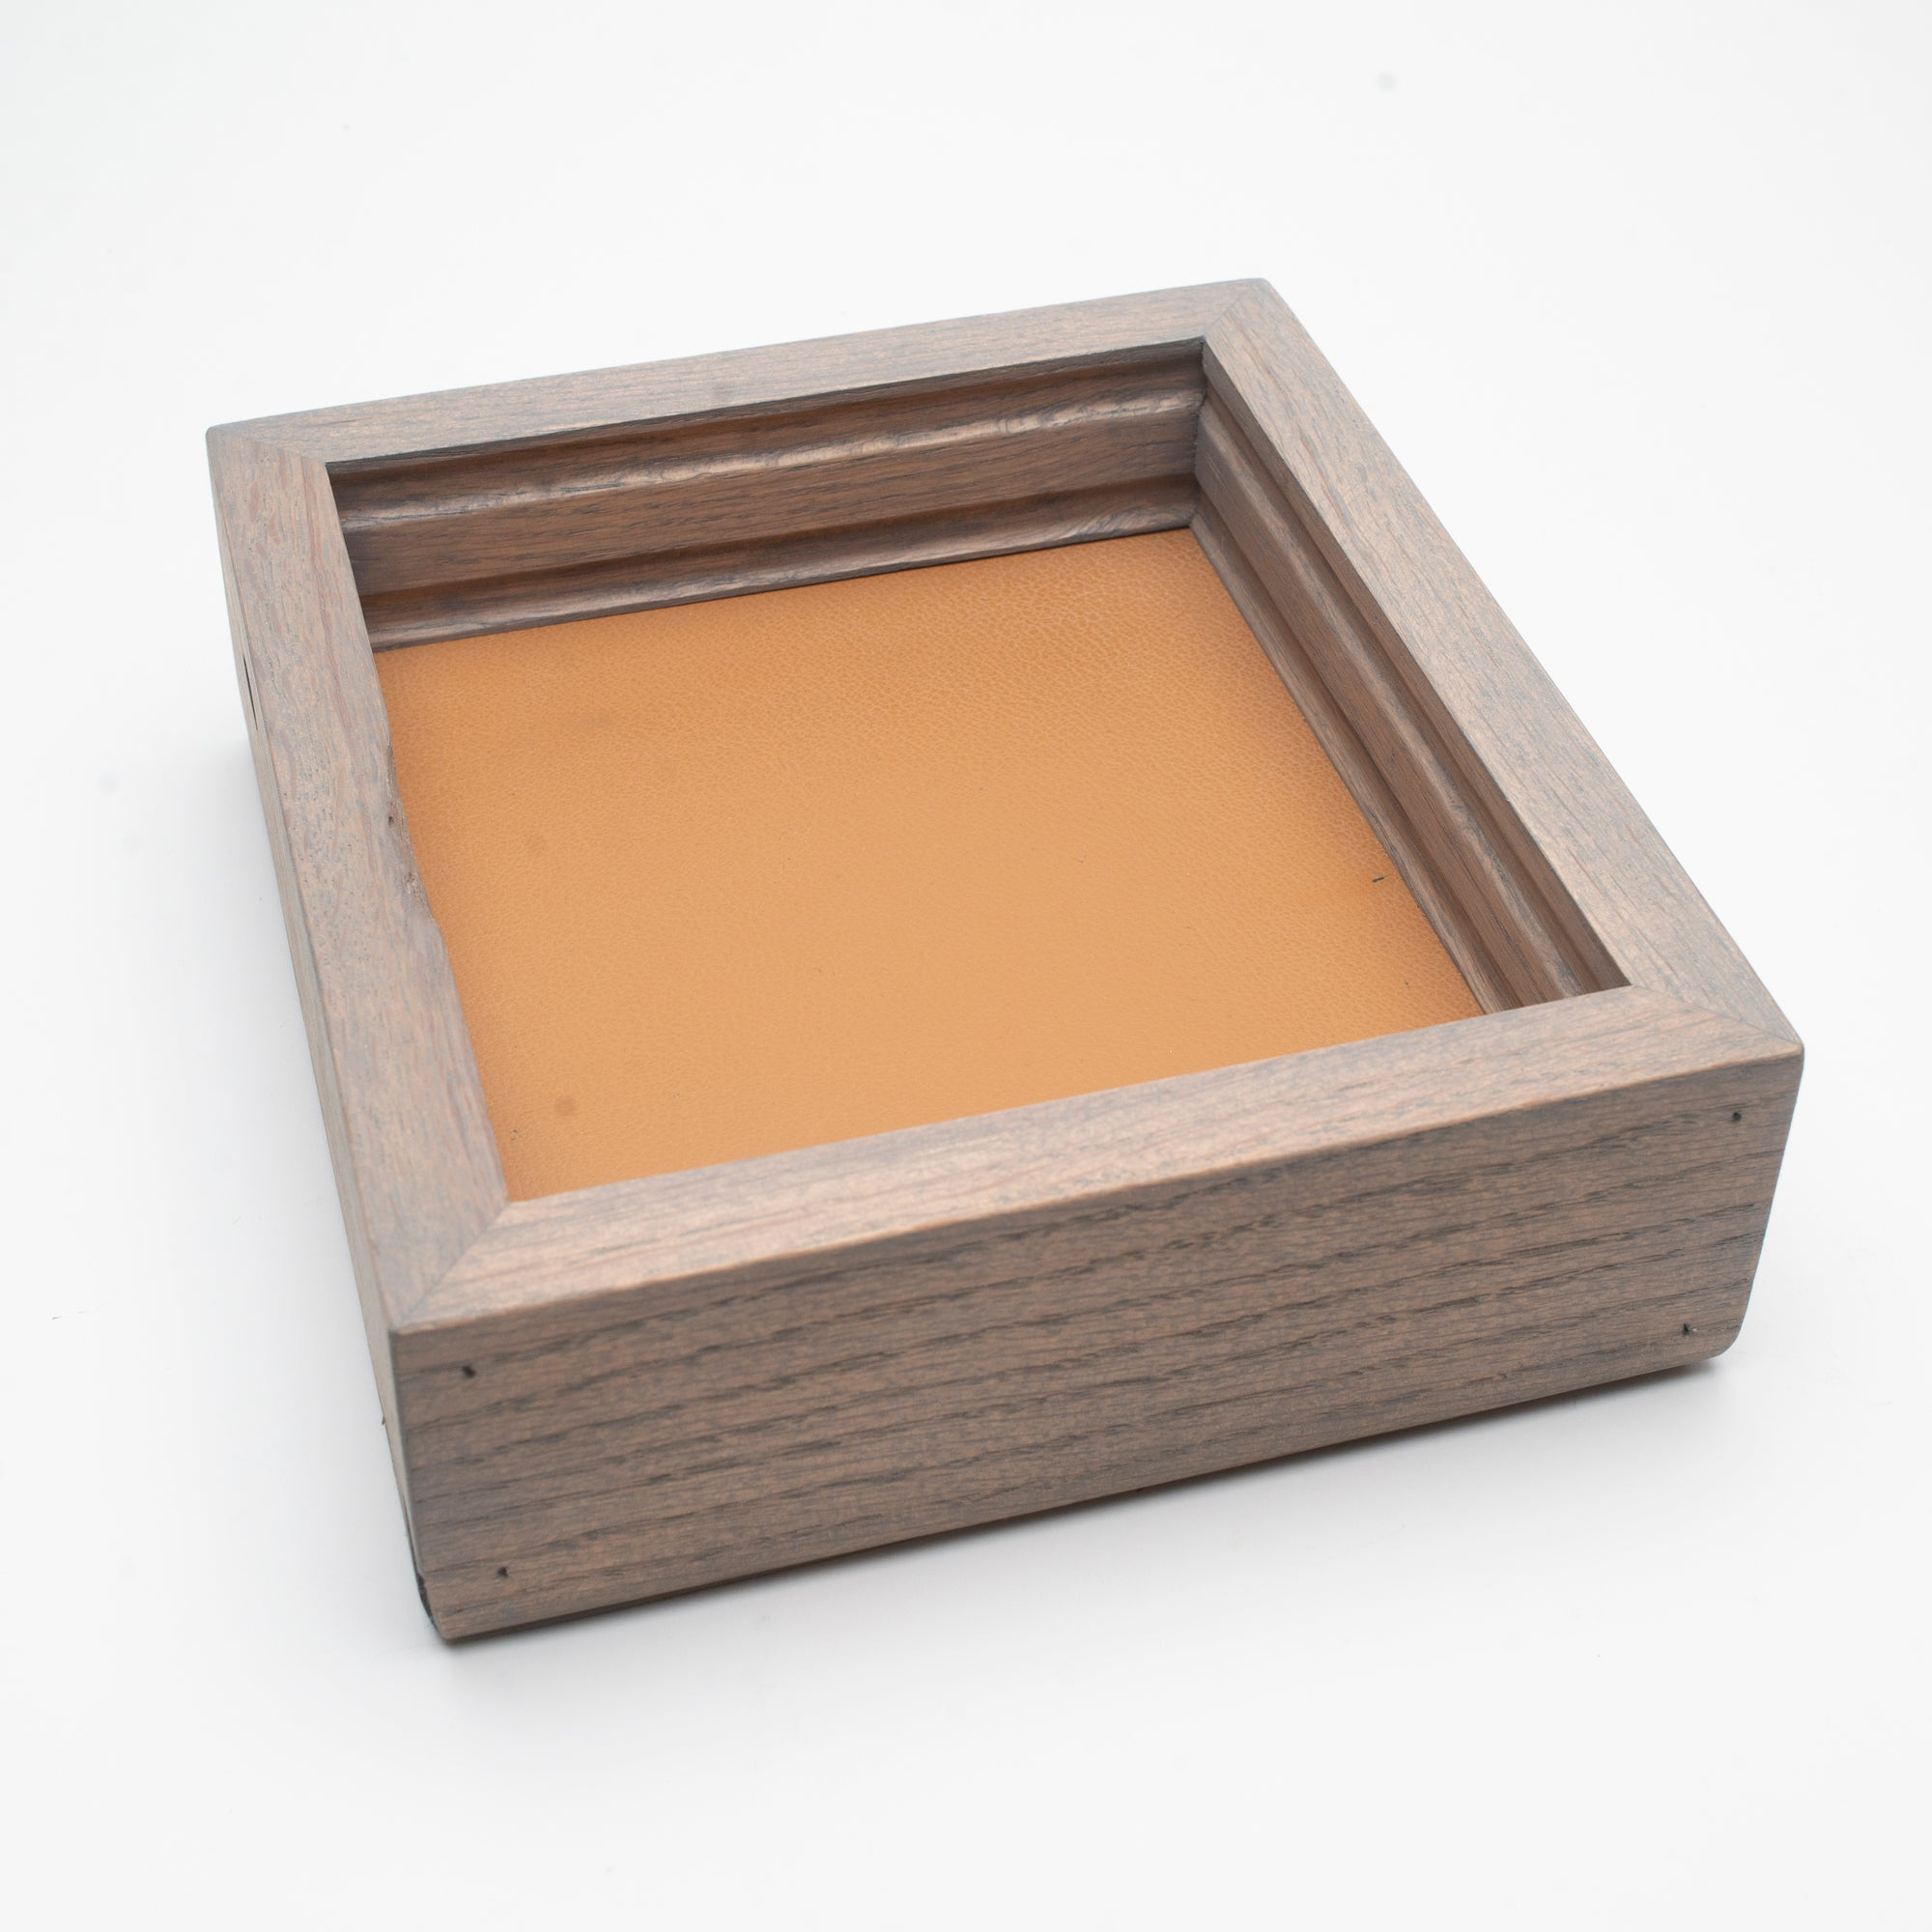 Addison Valet Tray - Camel Tan Leather + Gray Oak